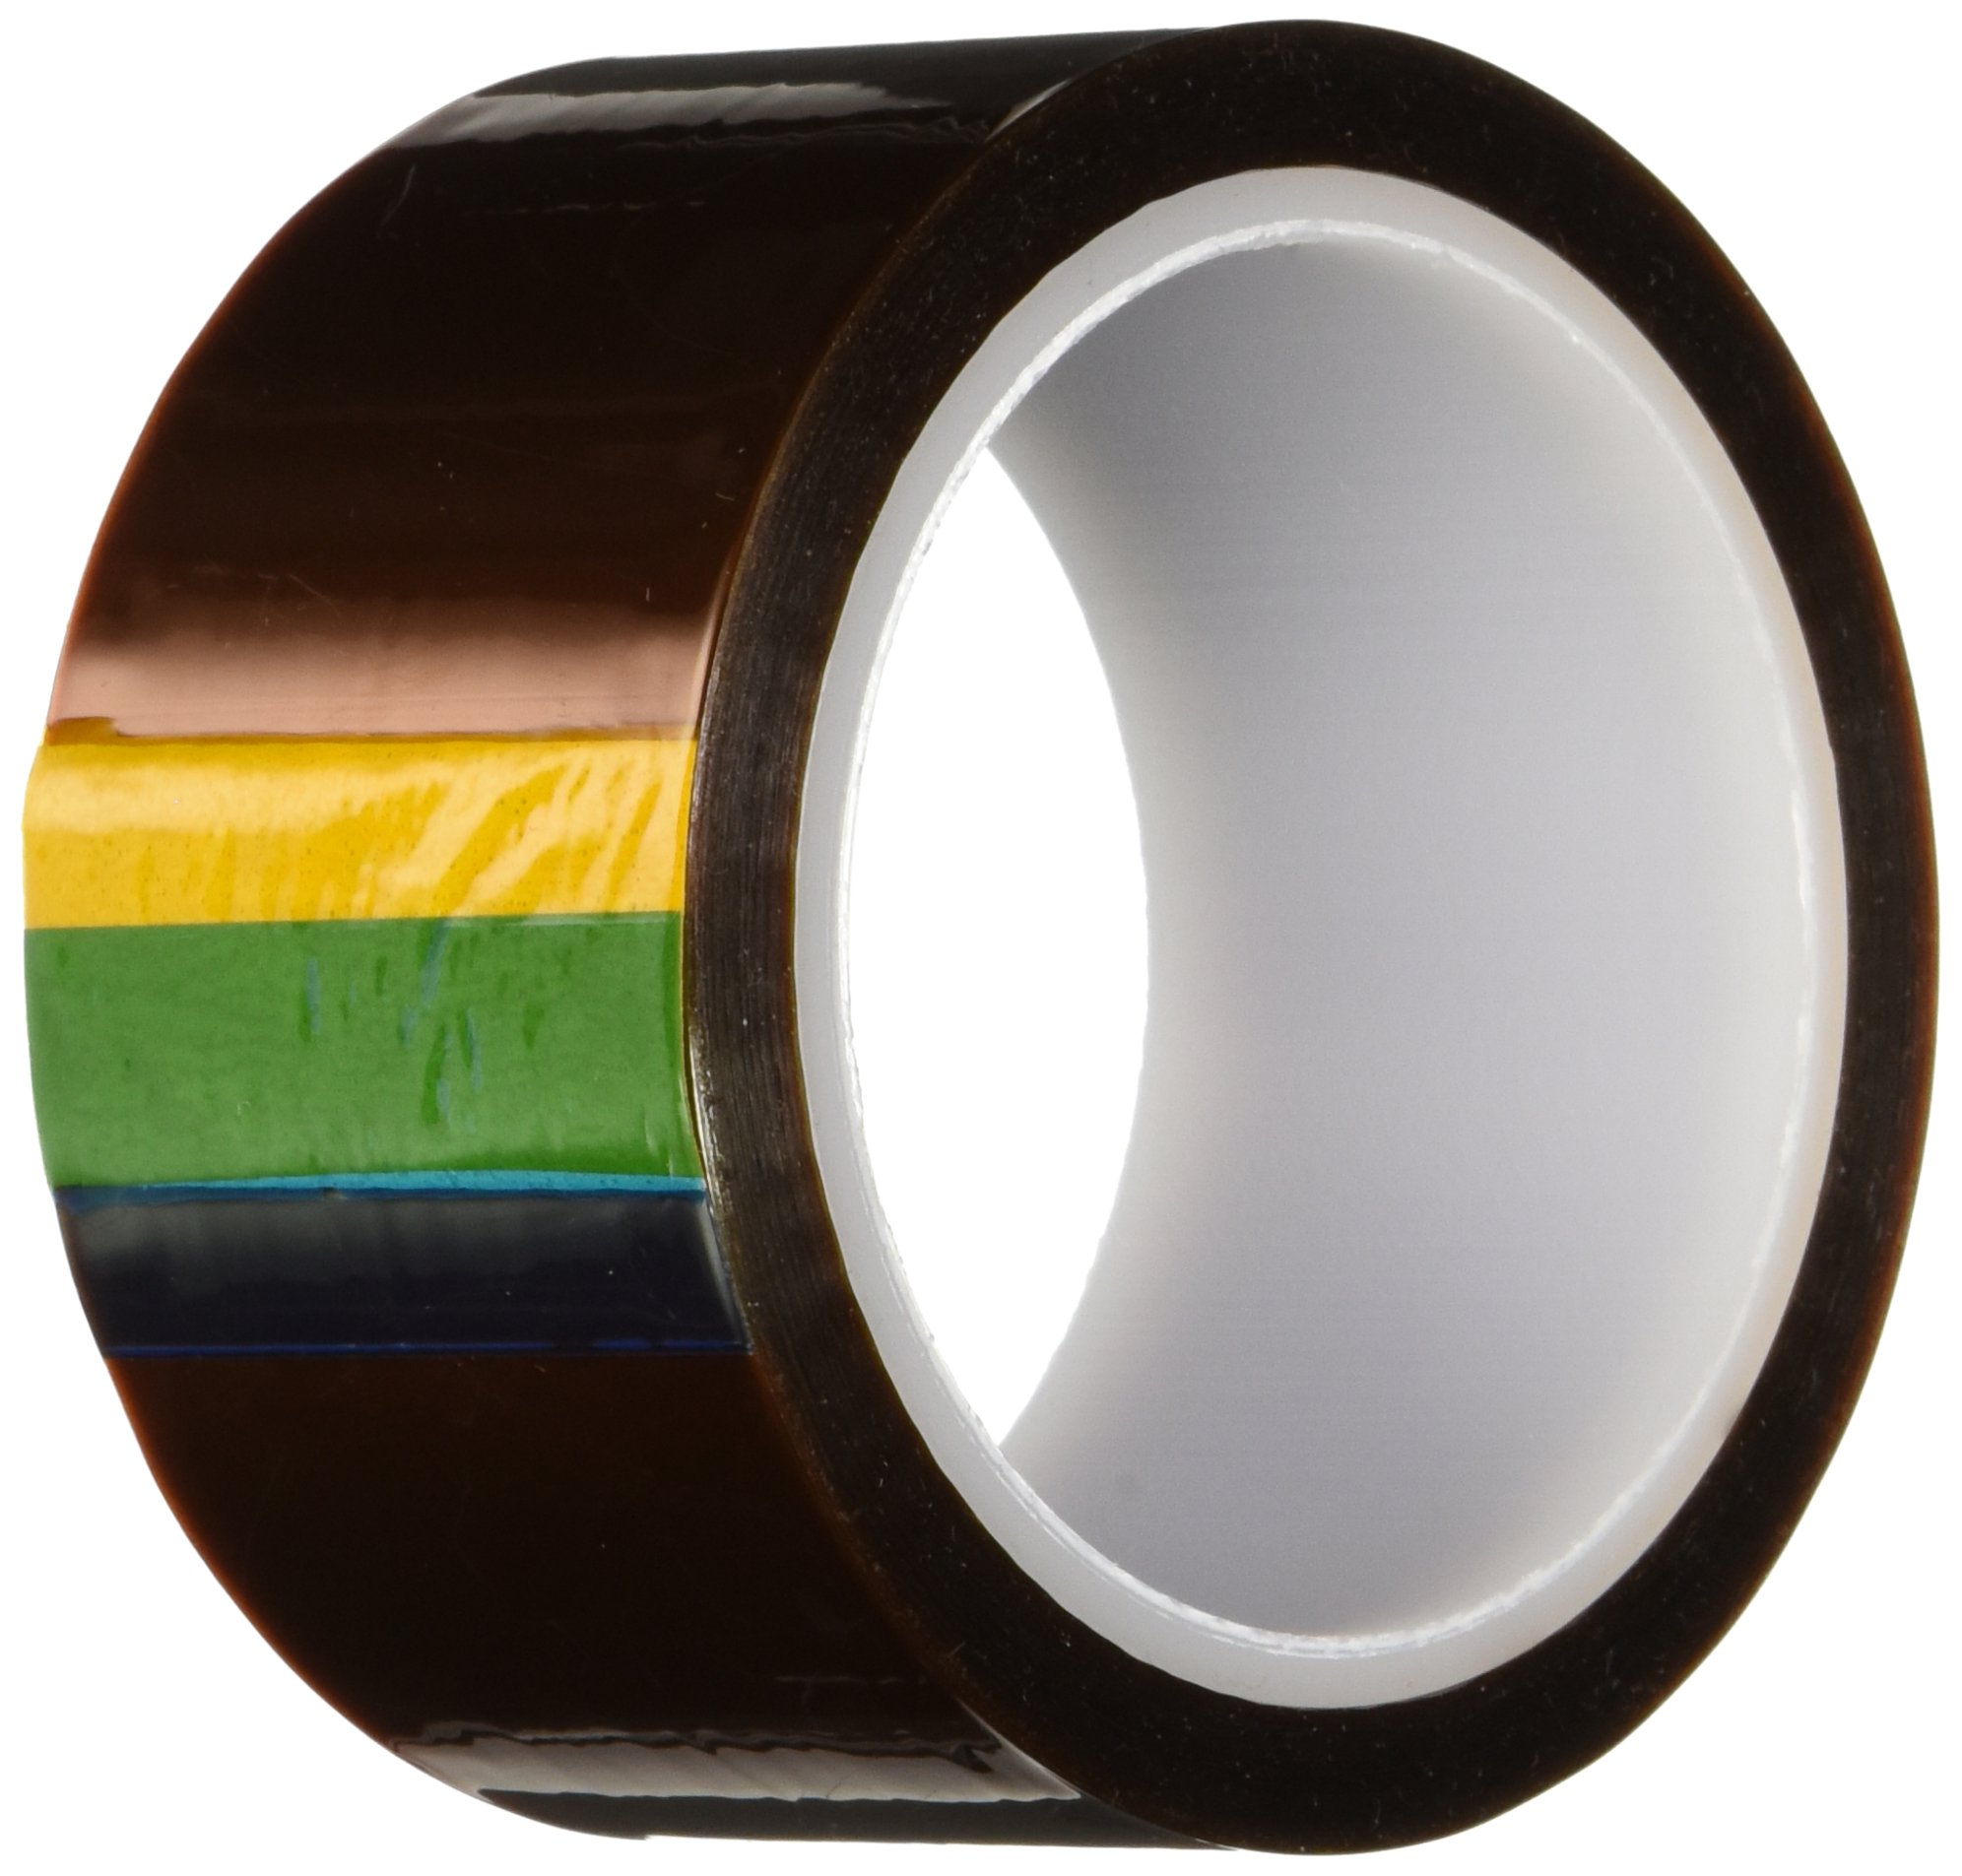 Kapton 18-1S Polyimide Tape with Silicone Adhesive, 2'' x 36 Yards by Kapton (Image #1)